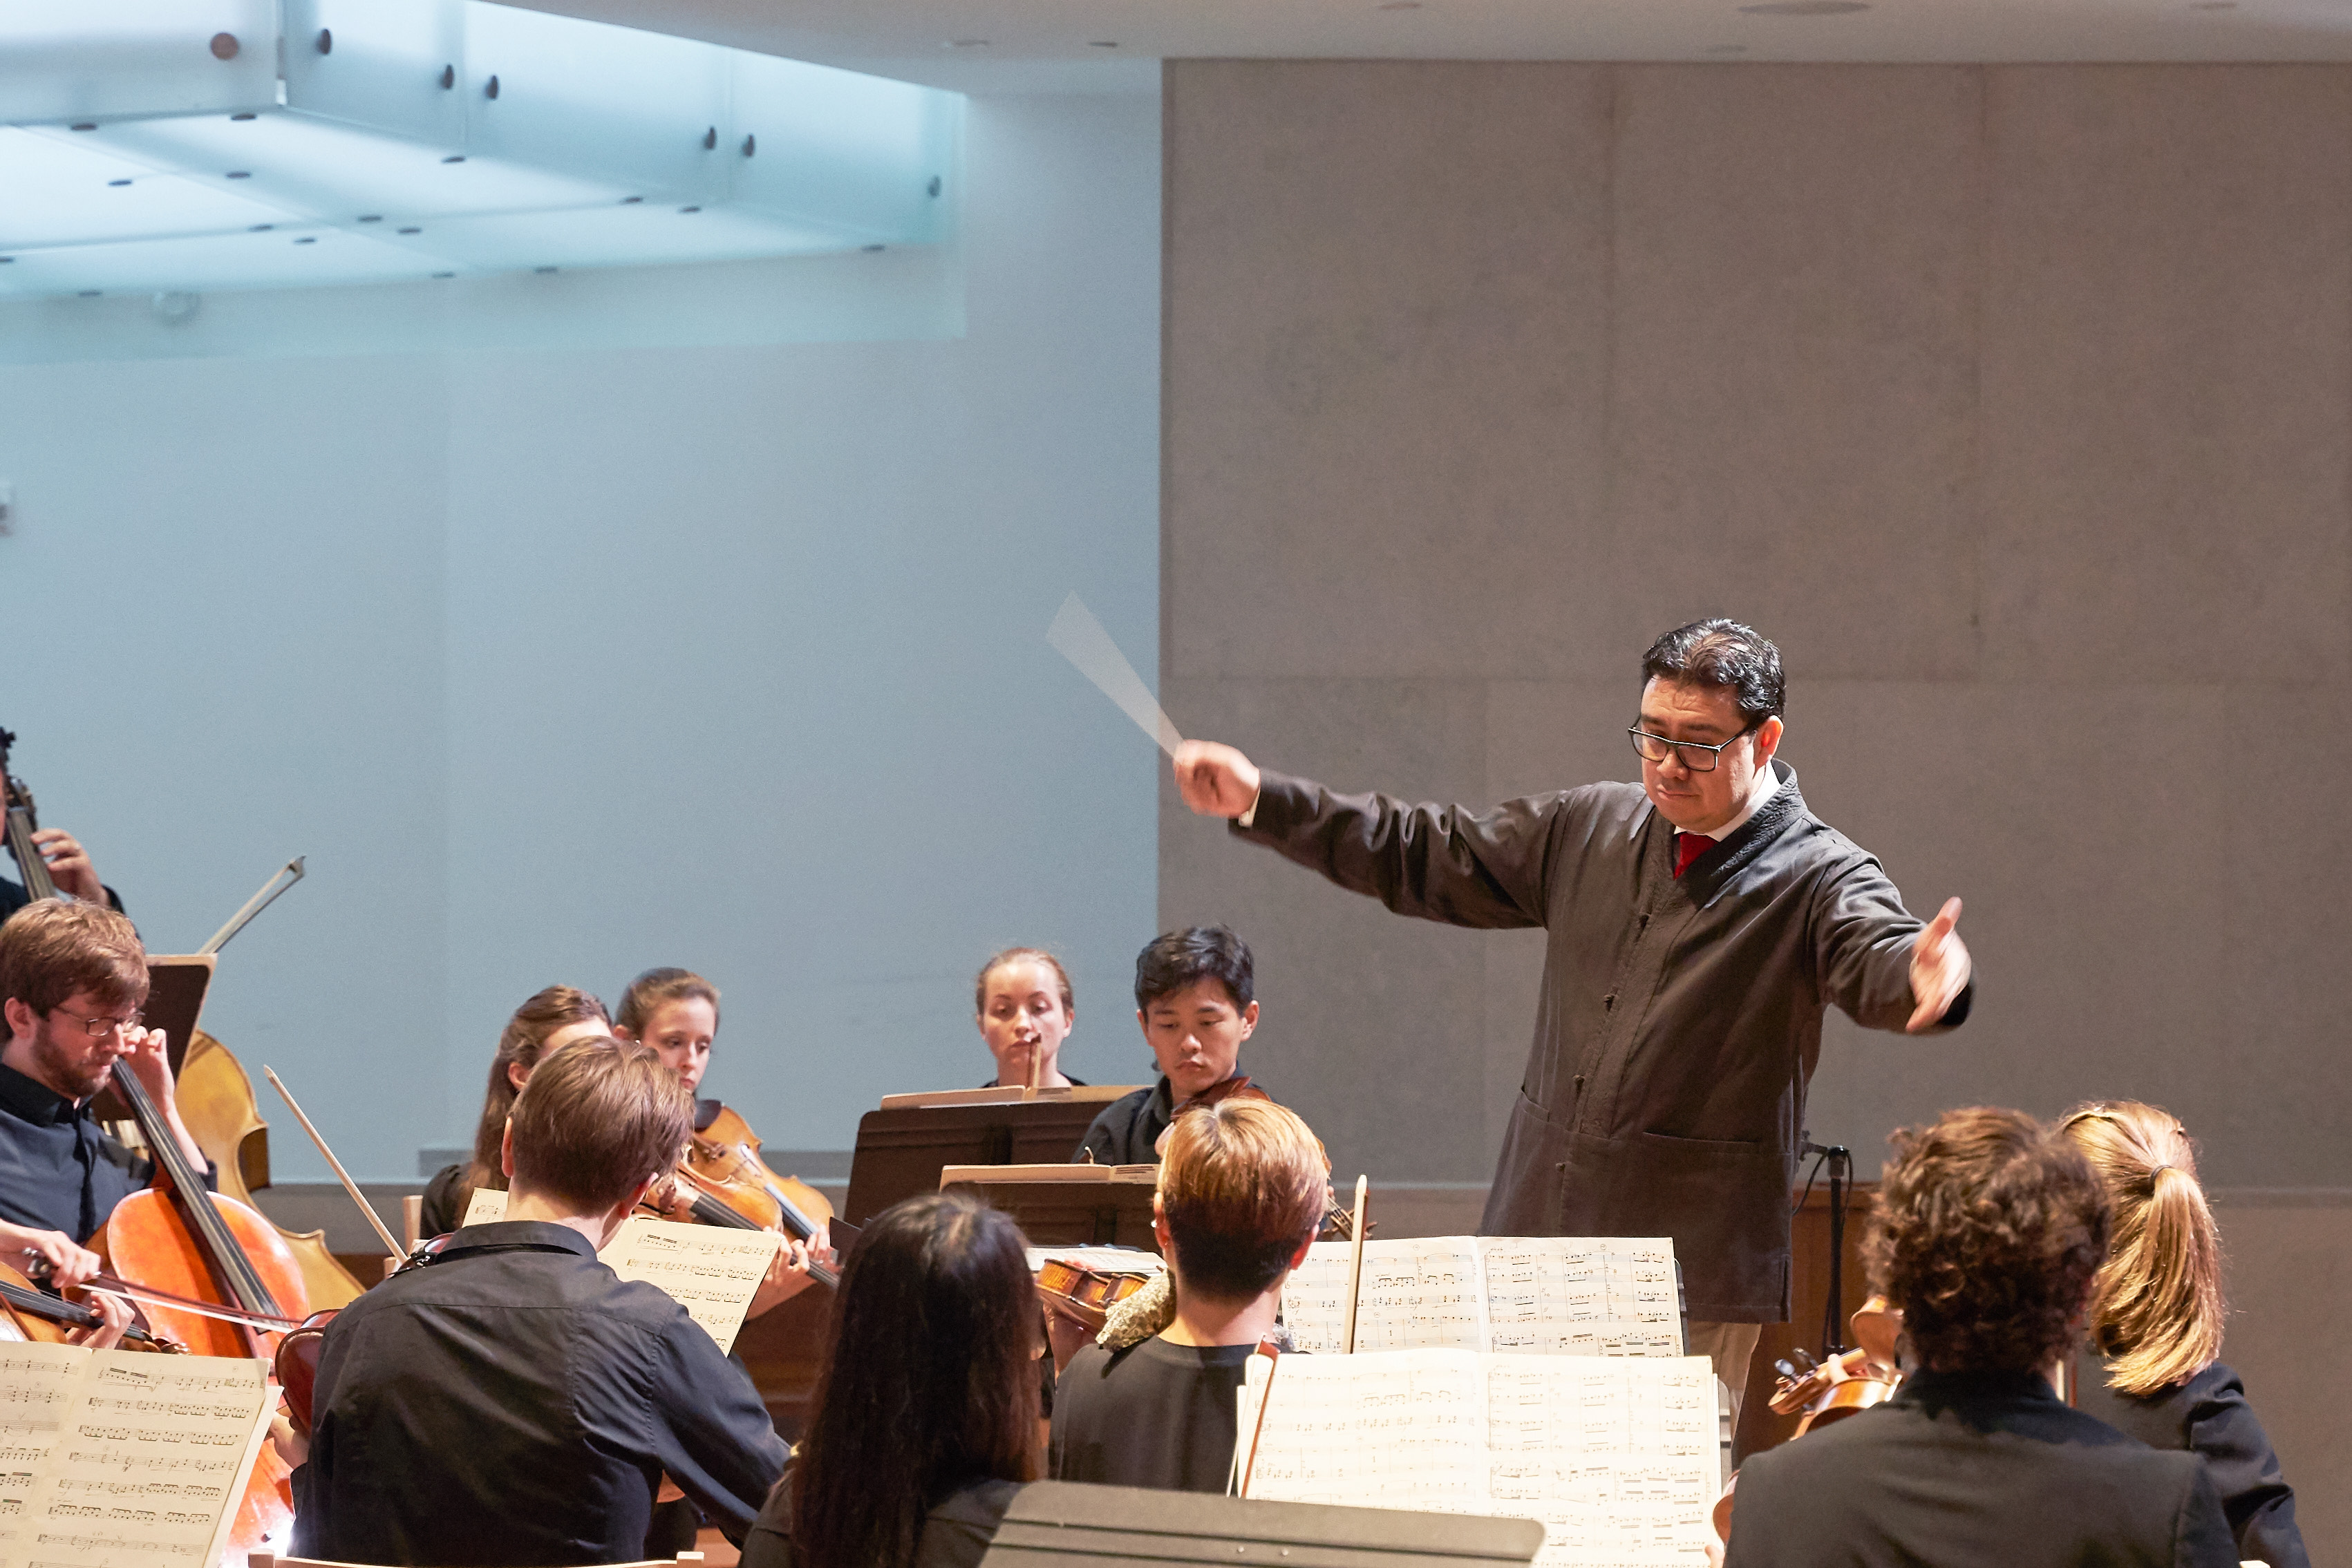 Alejandro Hernandez-Valdez conducts the New Orchestra of Washington (NOW).